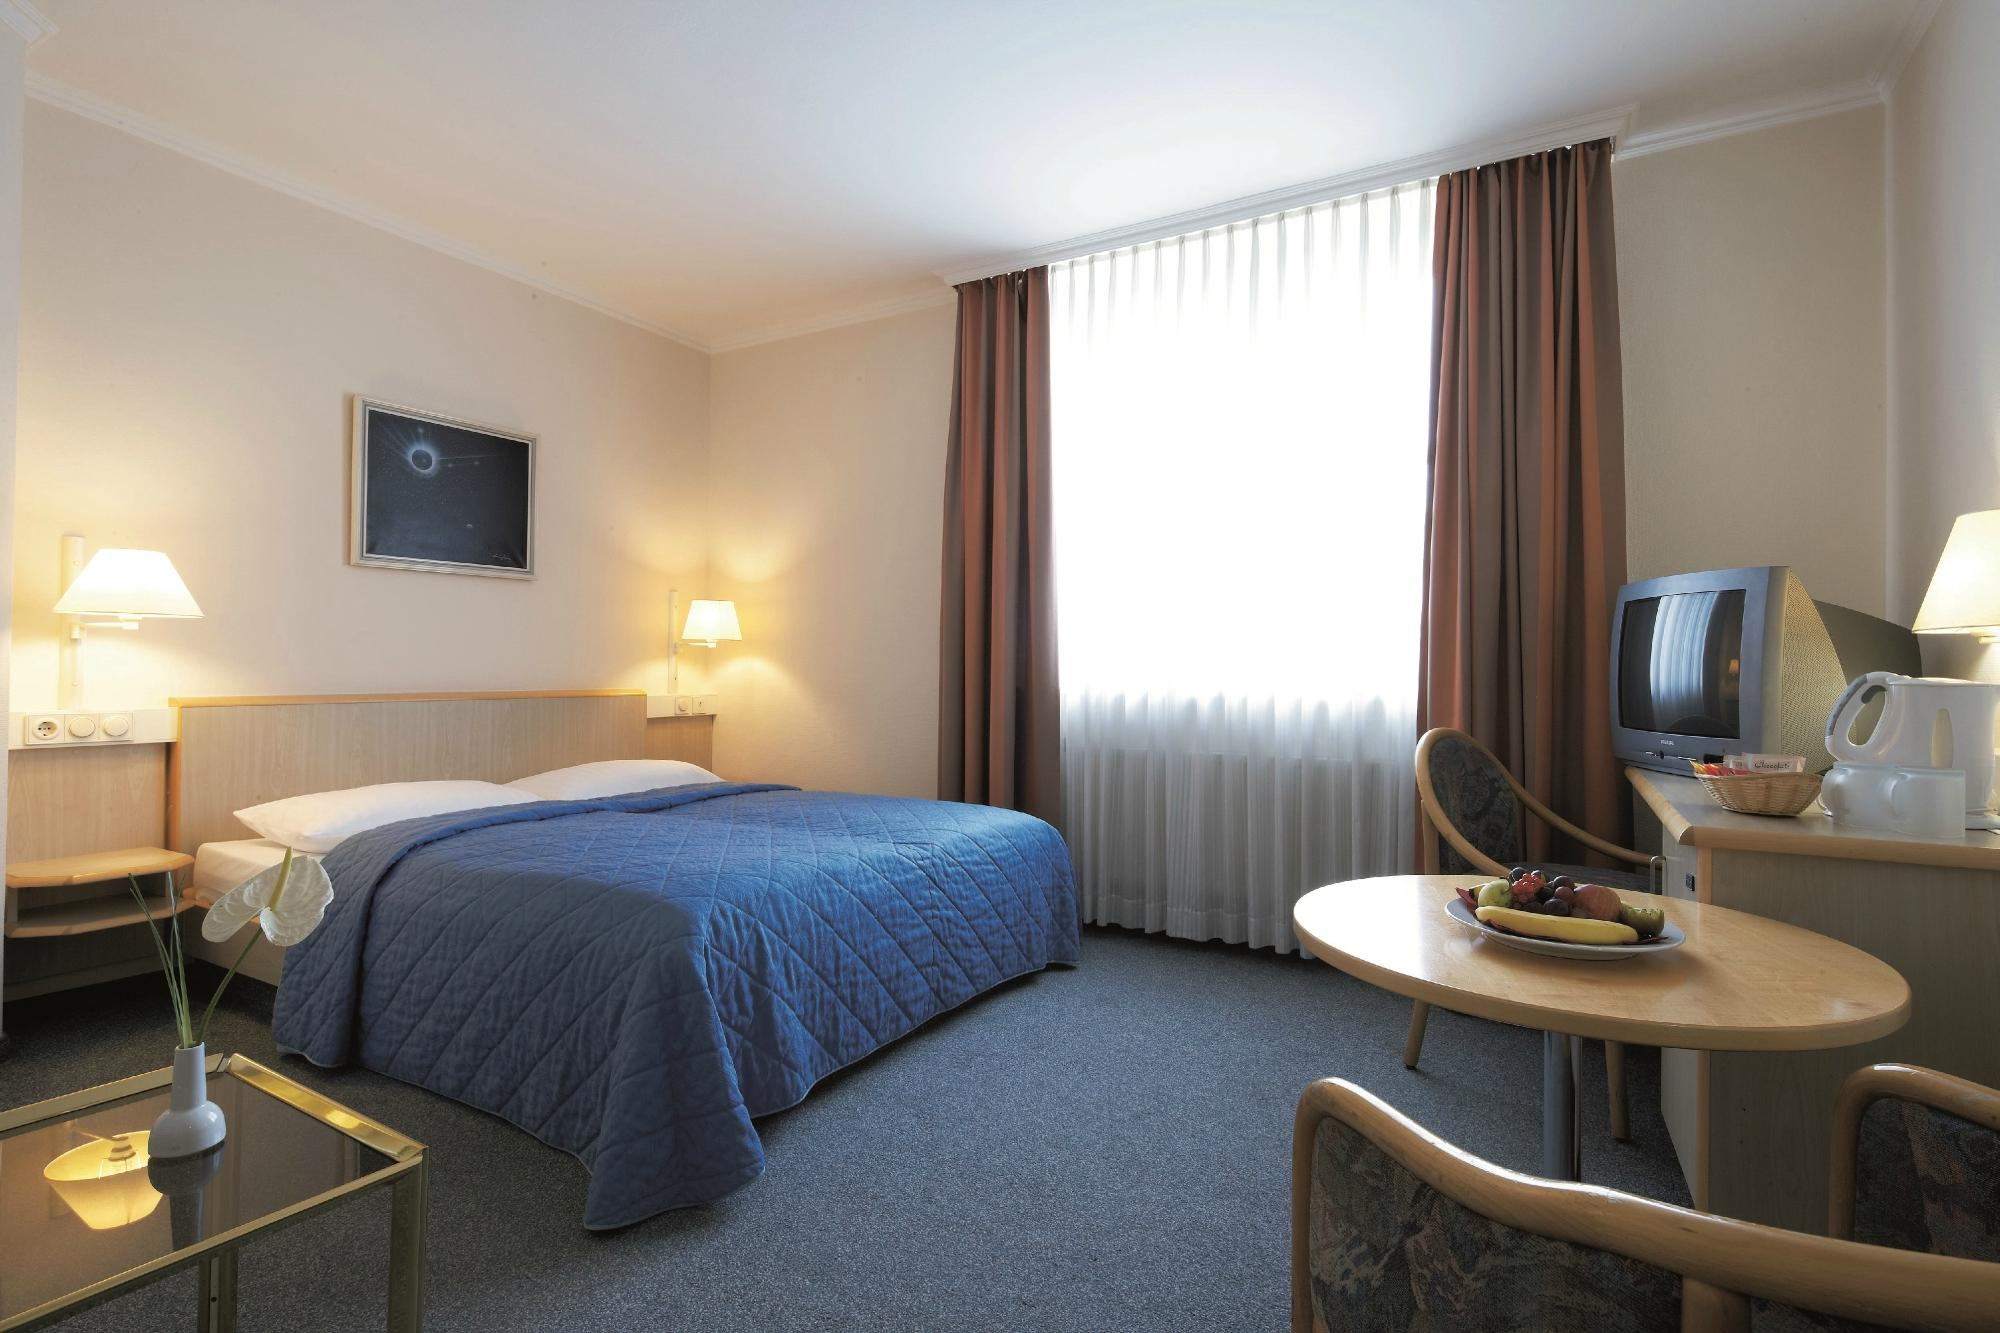 InterCityHotel Frankfurt